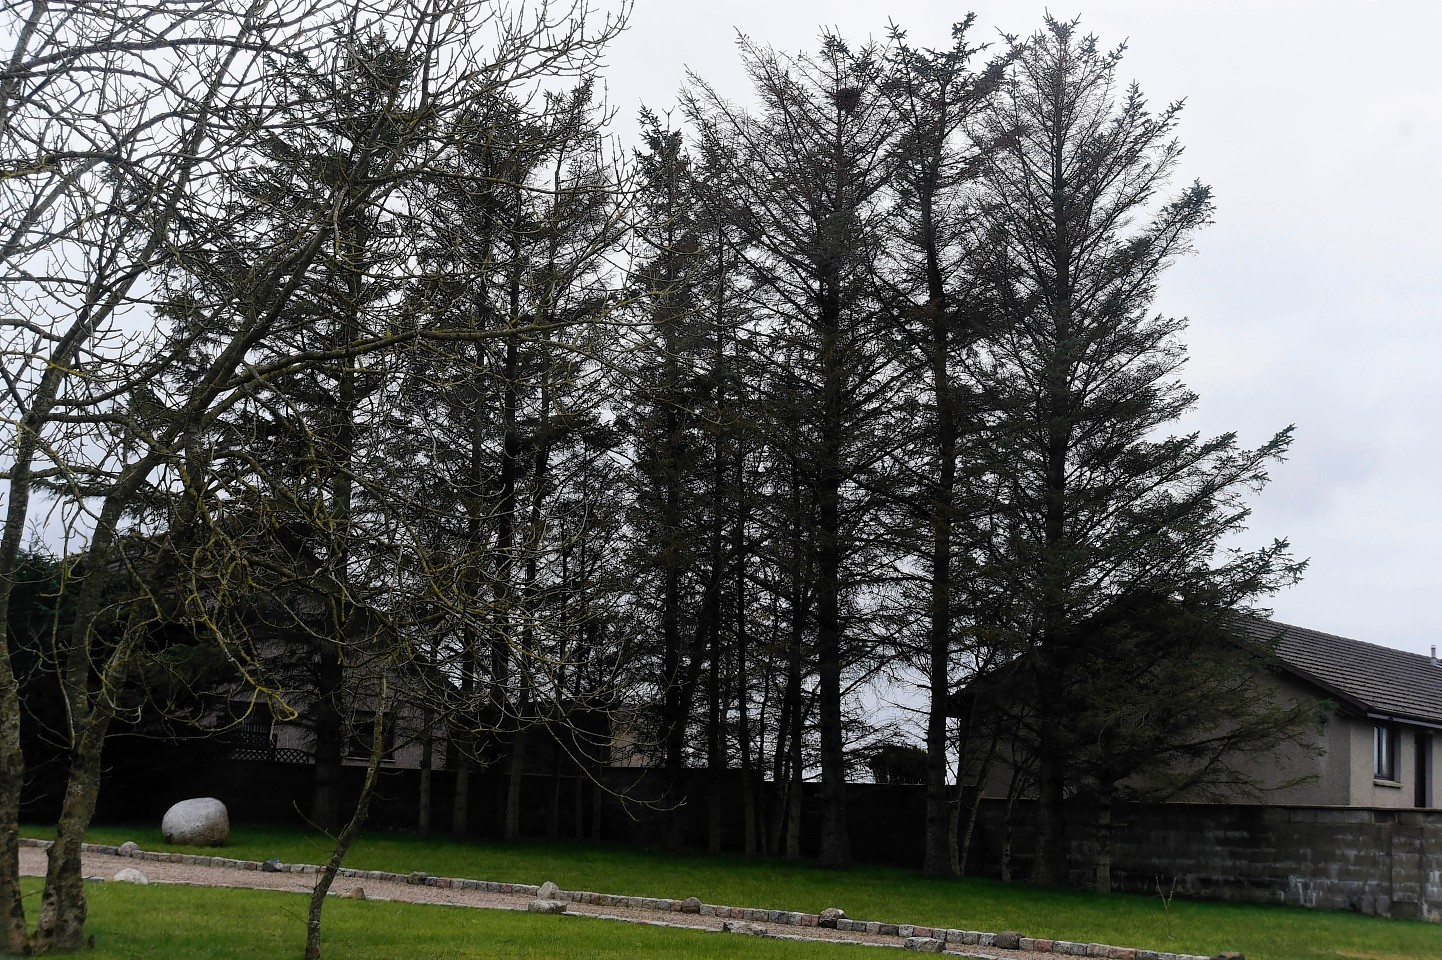 The trees at Anvil Place, in Crimond